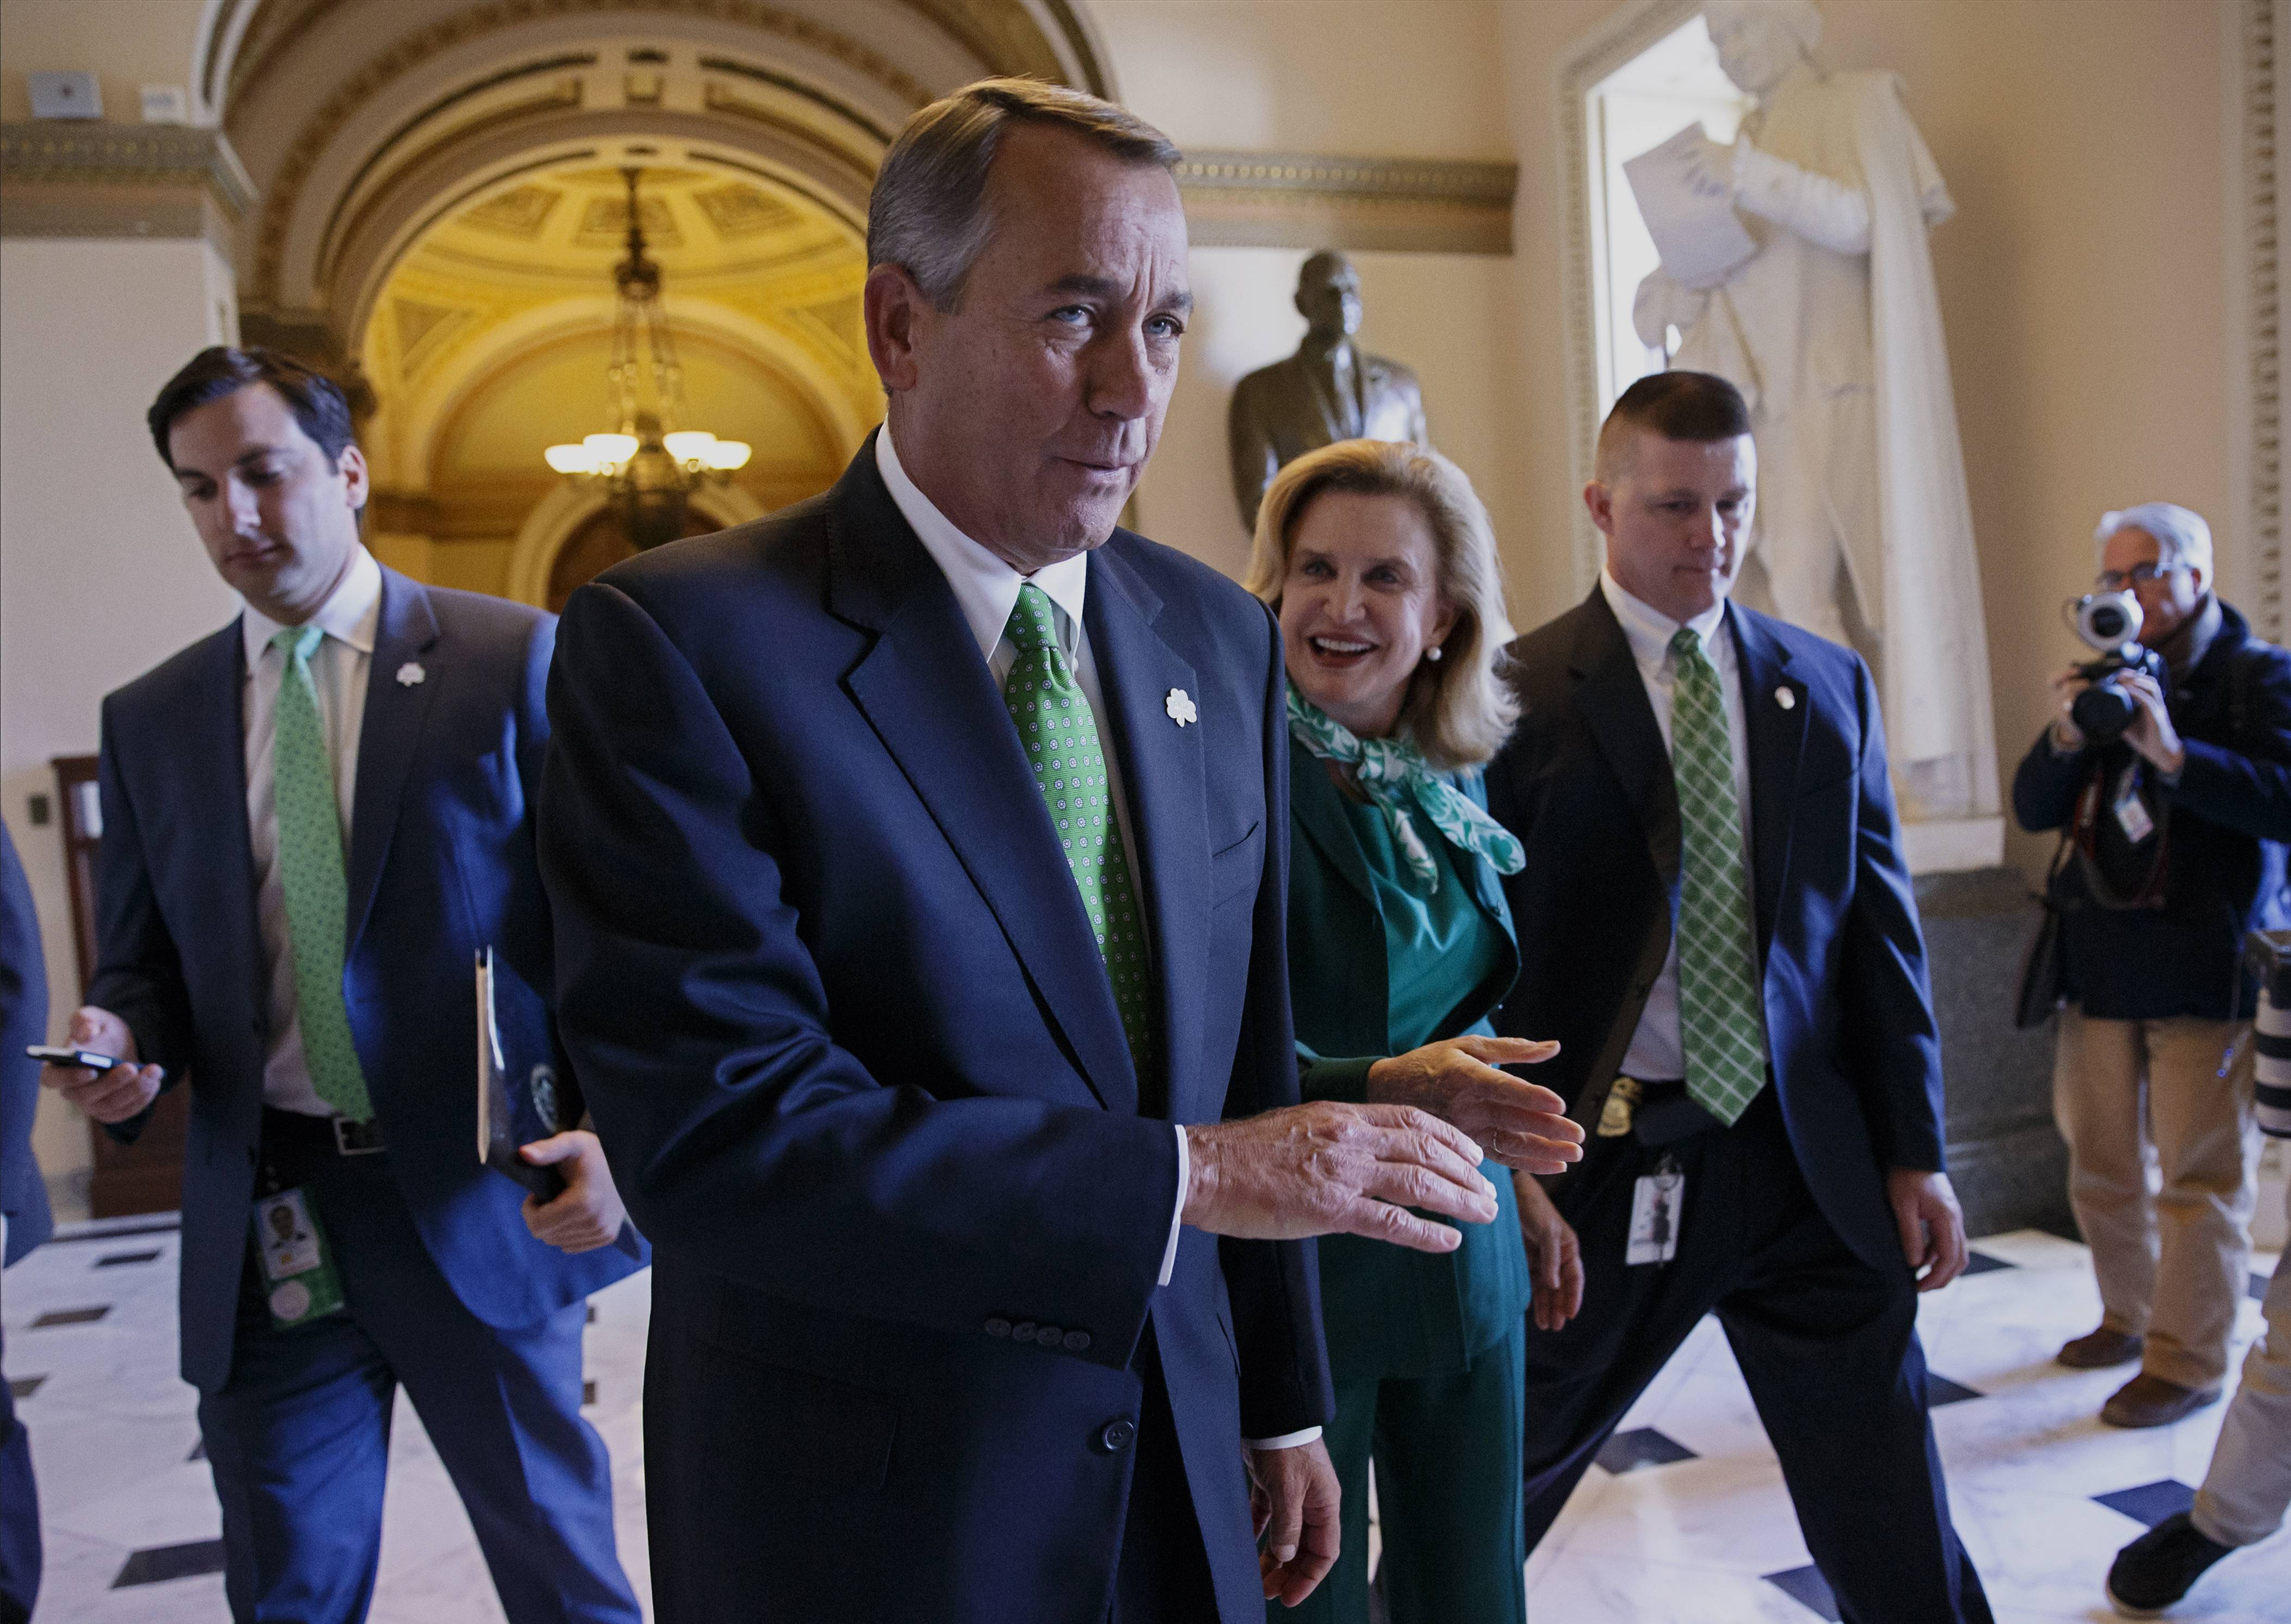 After being greeted by Rep. Carolyn Maloney, a New York Democrat, center right, House Speaker John Boehner of Ohio leaves the House chamber Friday on Capitol Hill in Washington, where the Republican-controlled House voted for the 51st time in 26 months to neuter the nation's health care law.